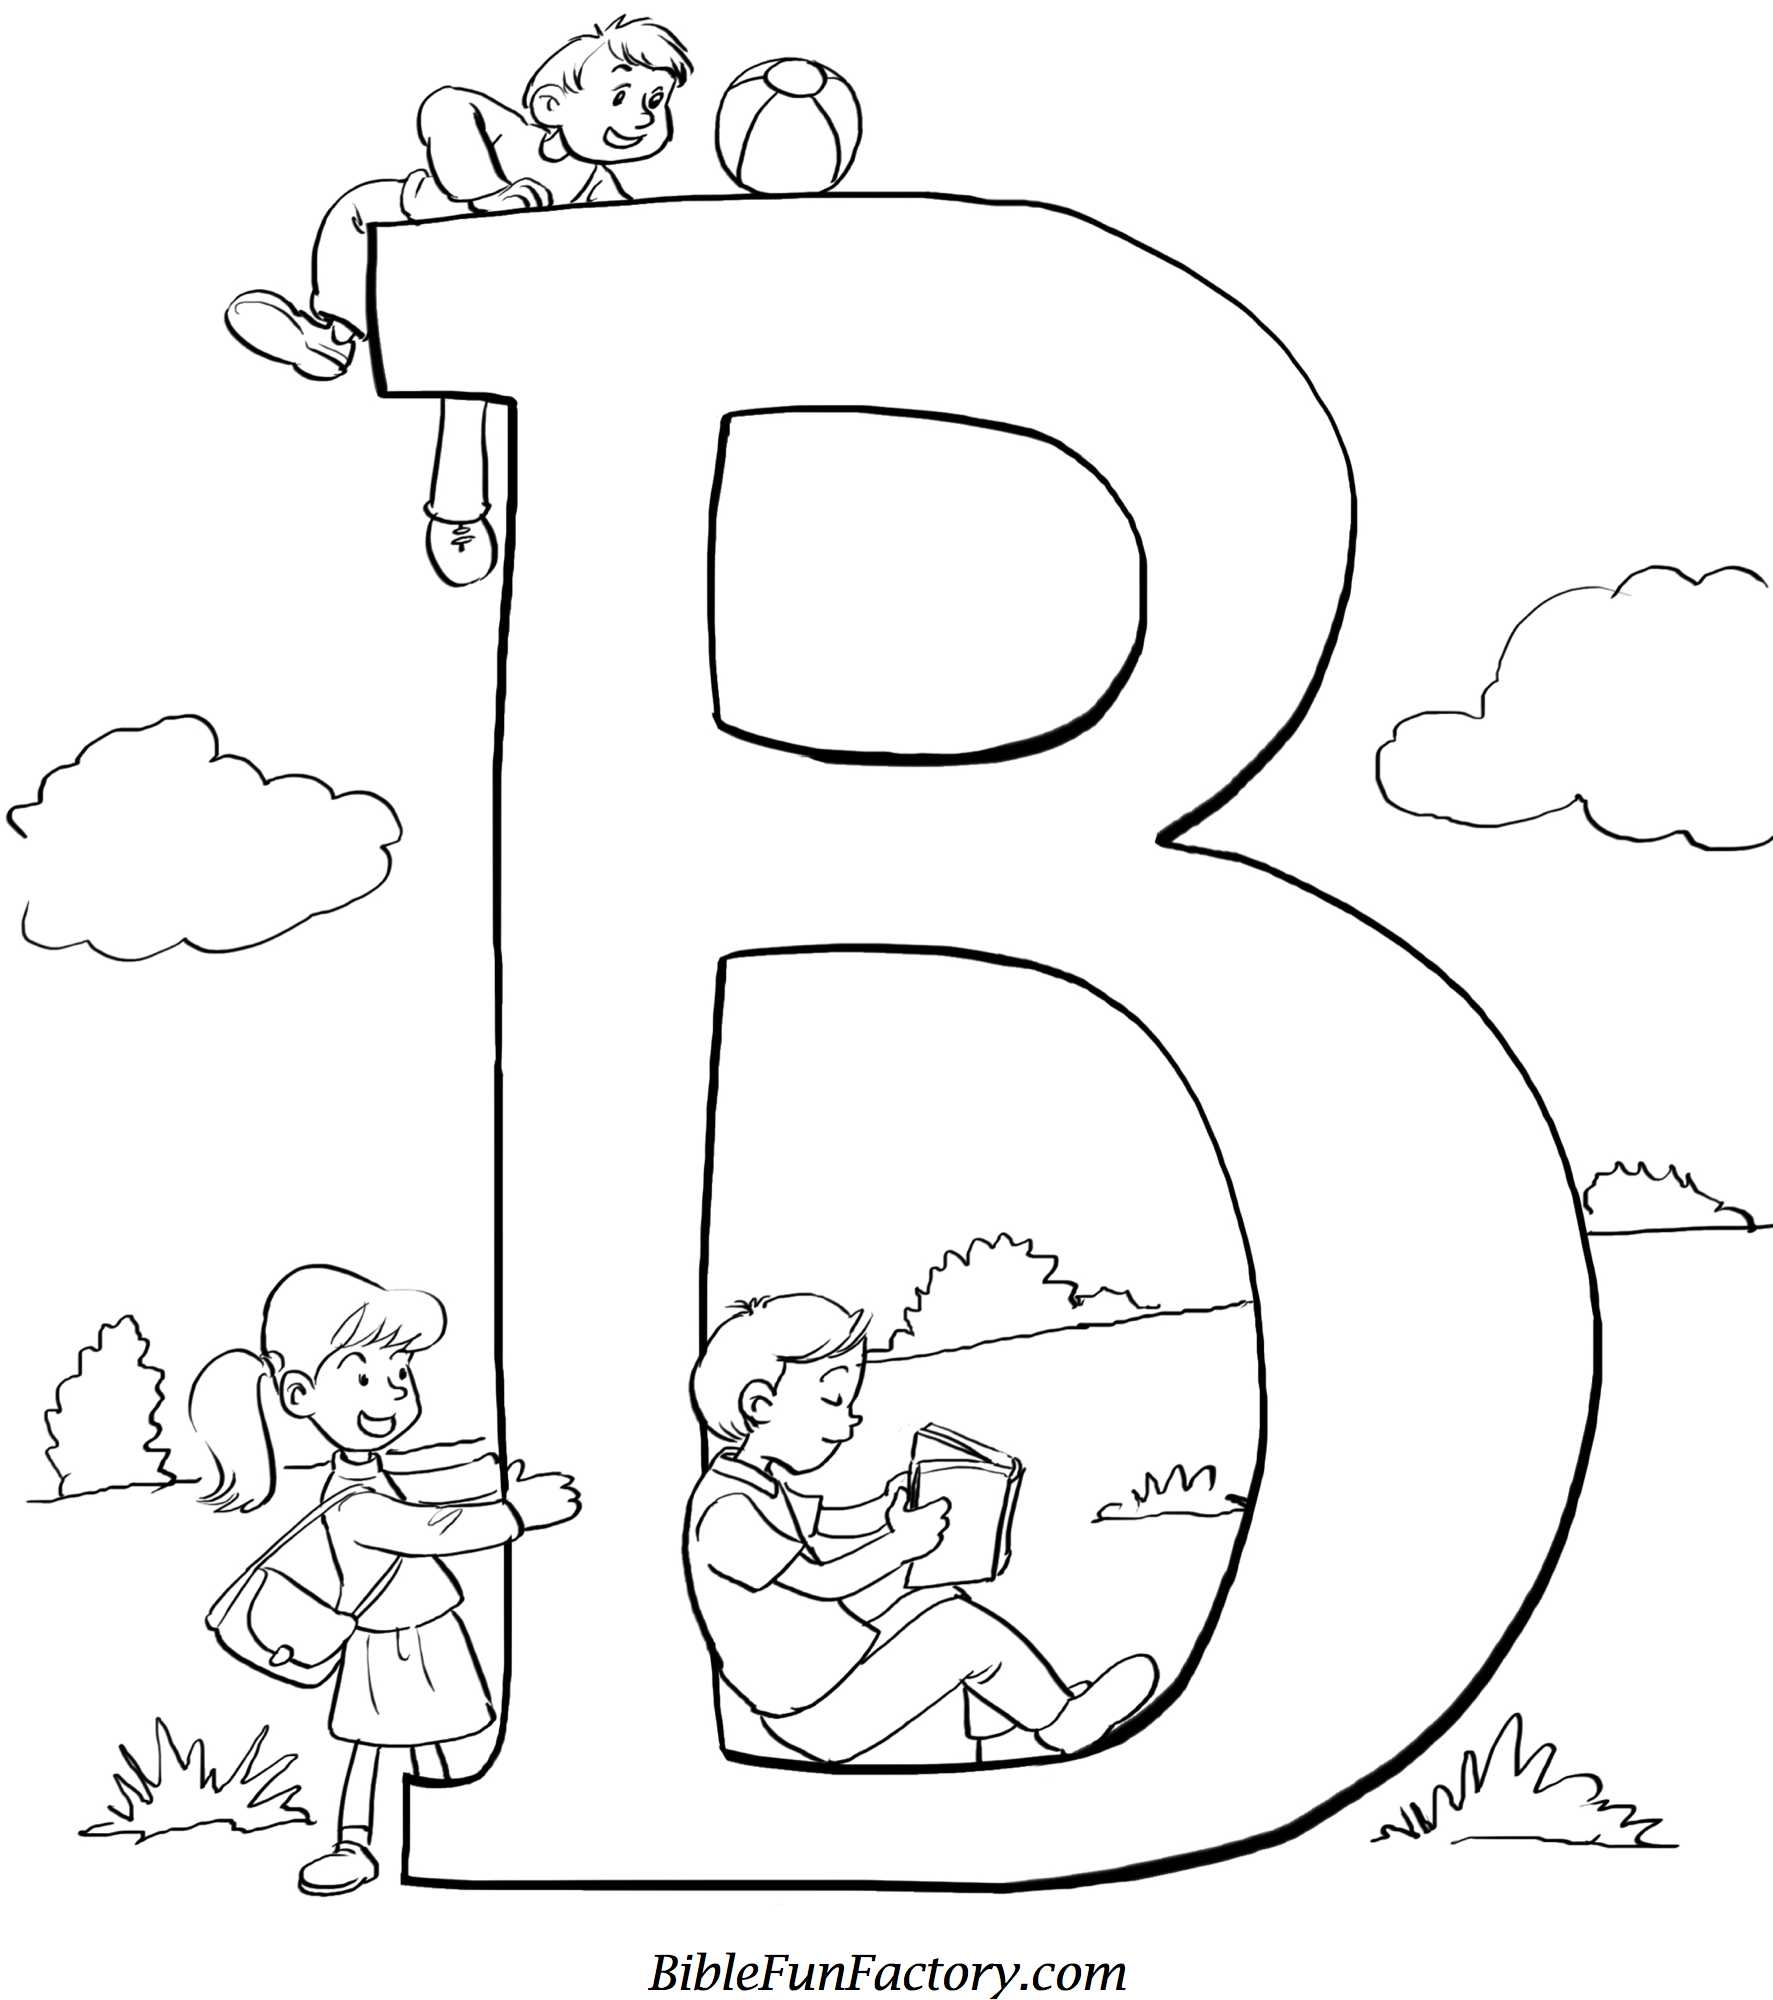 bible coloring pages for preschoolers the bible coloring sheet google search bible coloring coloring for bible pages preschoolers